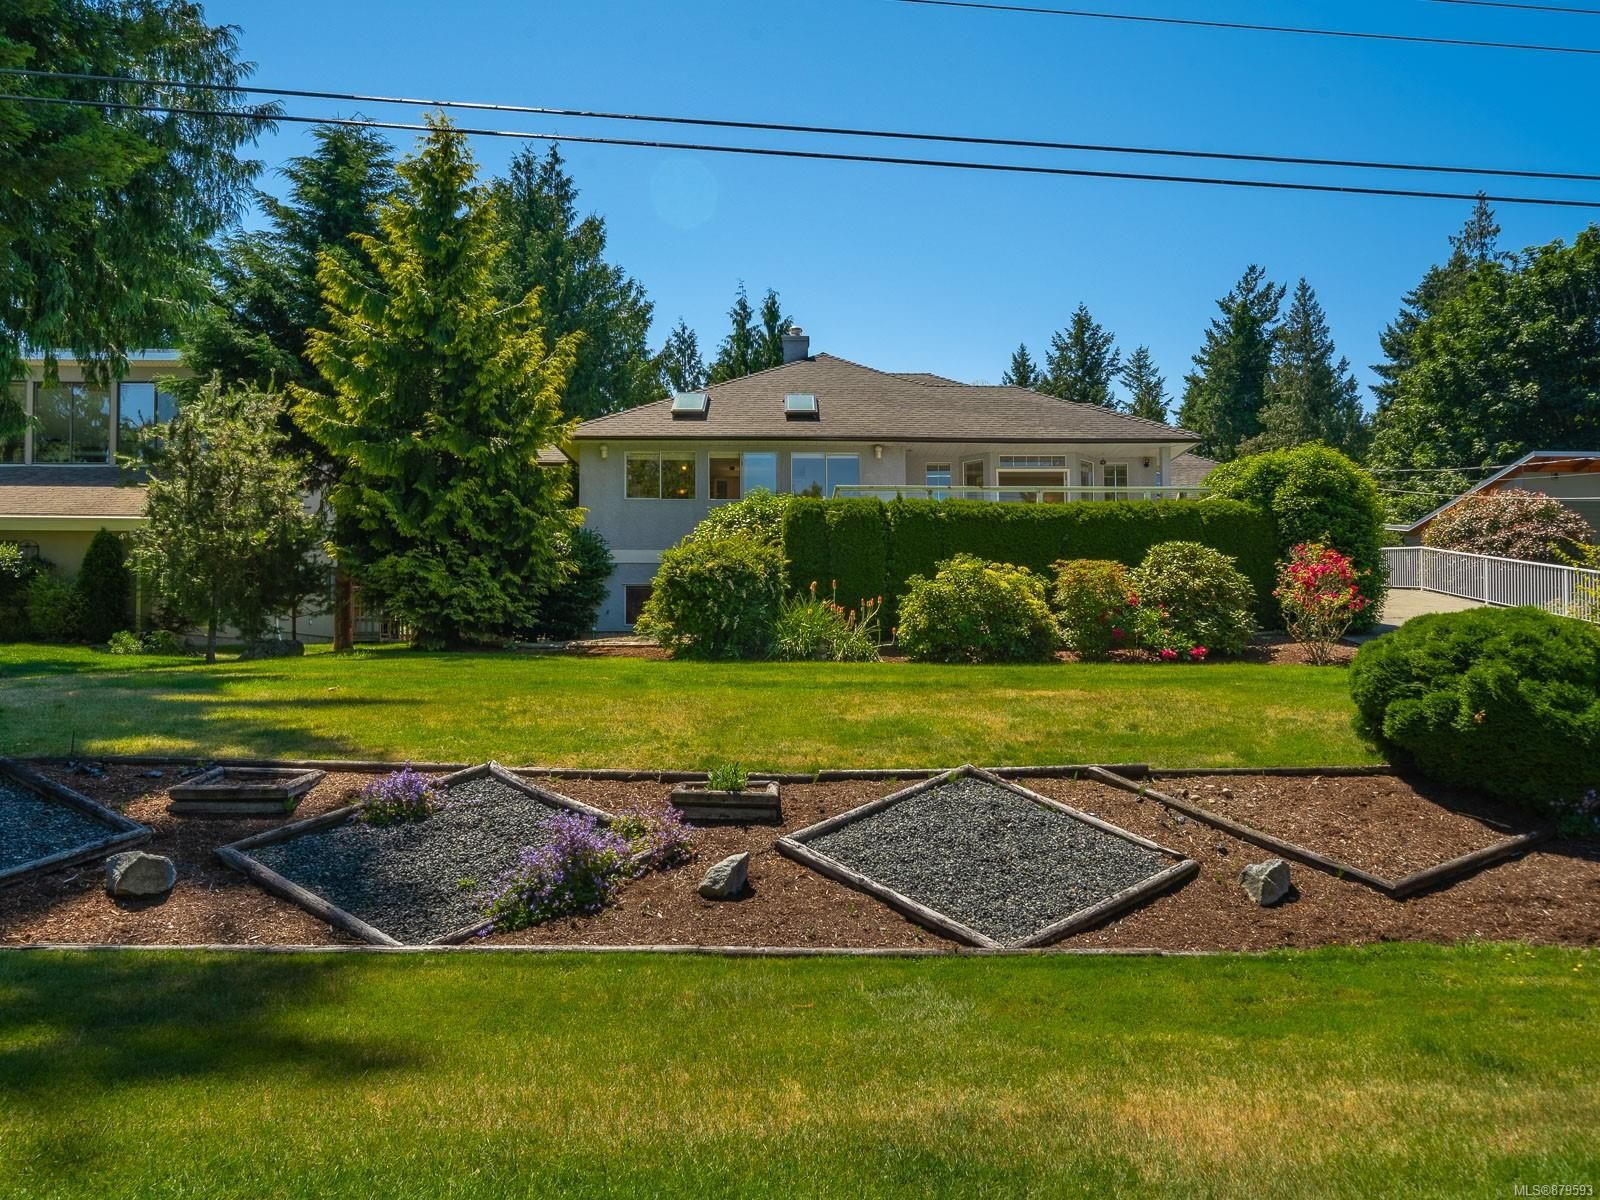 Main Photo: 1549 Madrona Dr in : PQ Nanoose House for sale (Parksville/Qualicum)  : MLS®# 879593